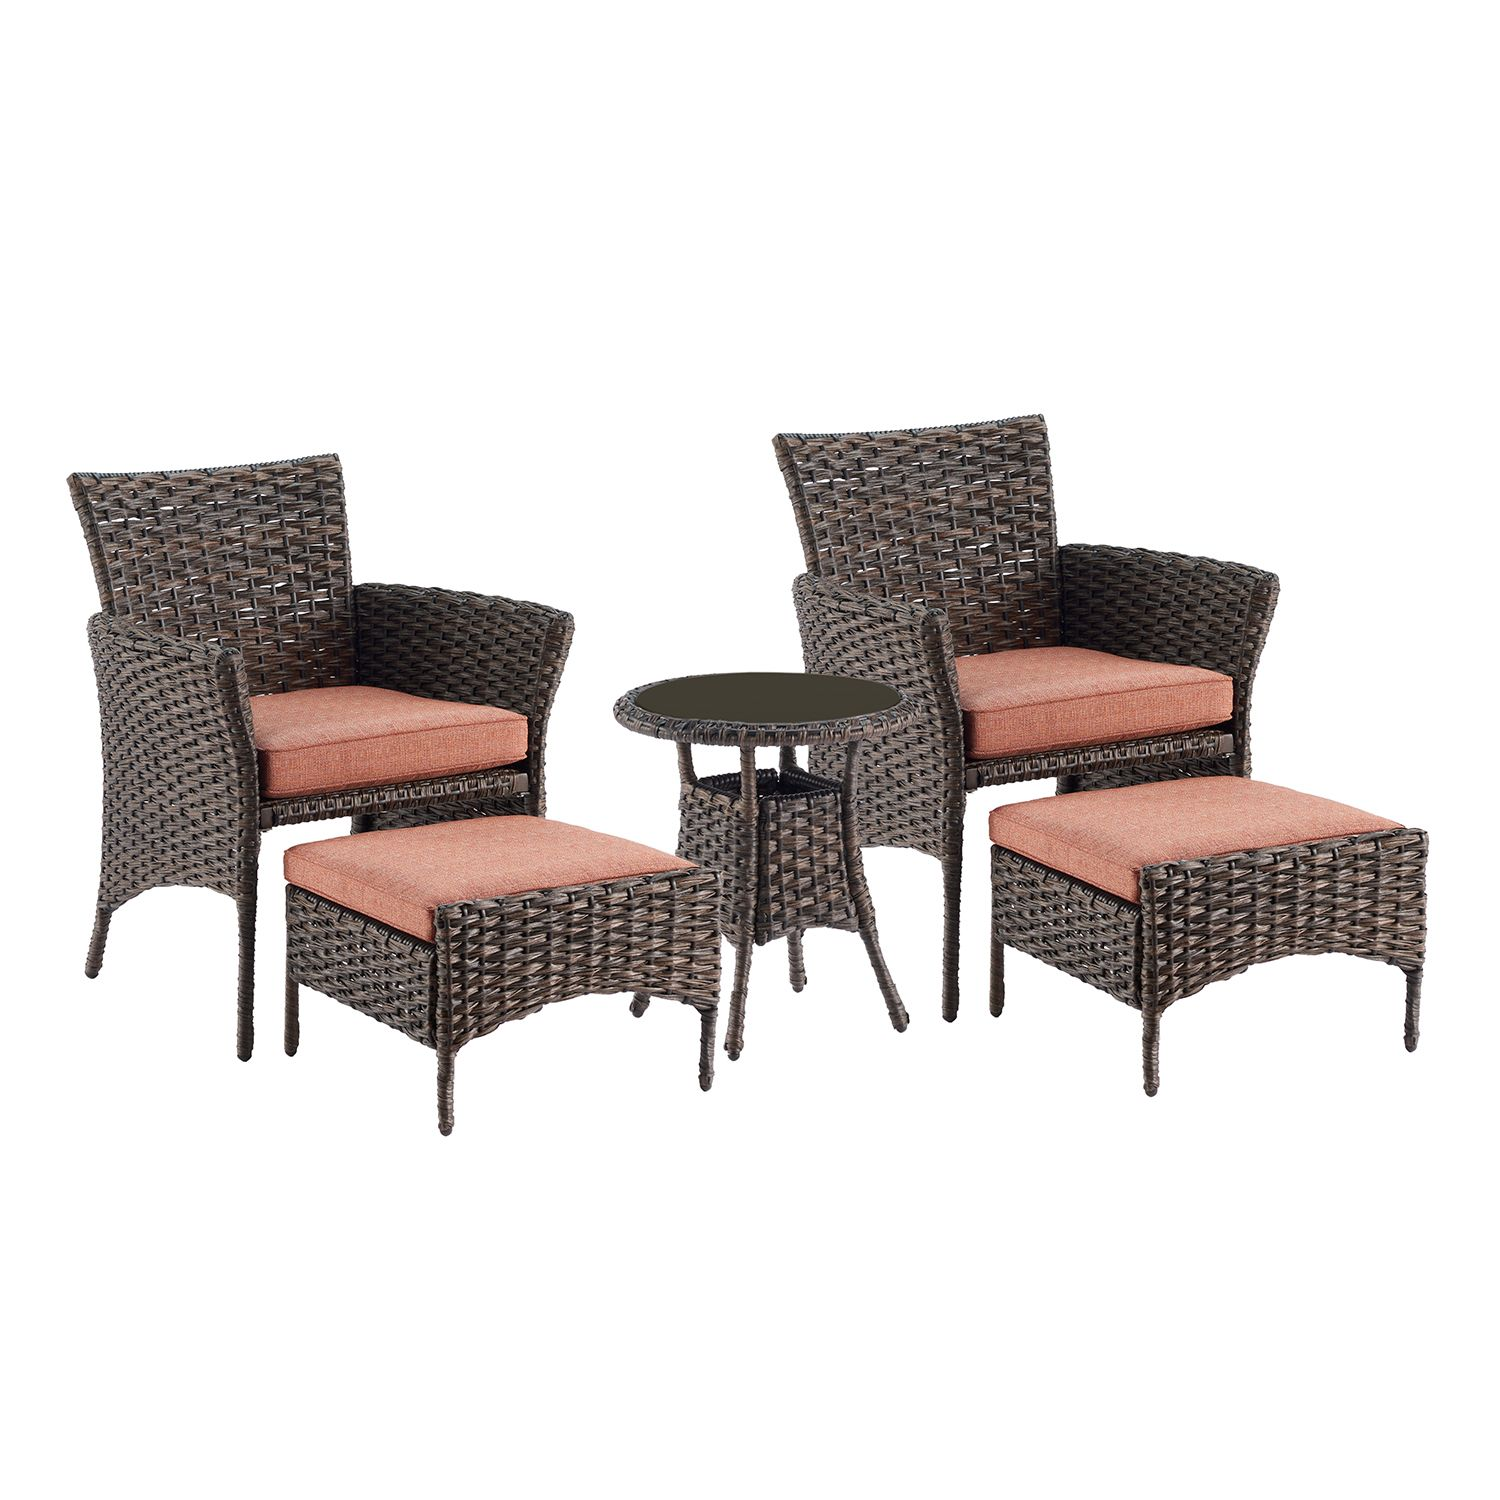 High Quality Patio Sets U0026 Collections